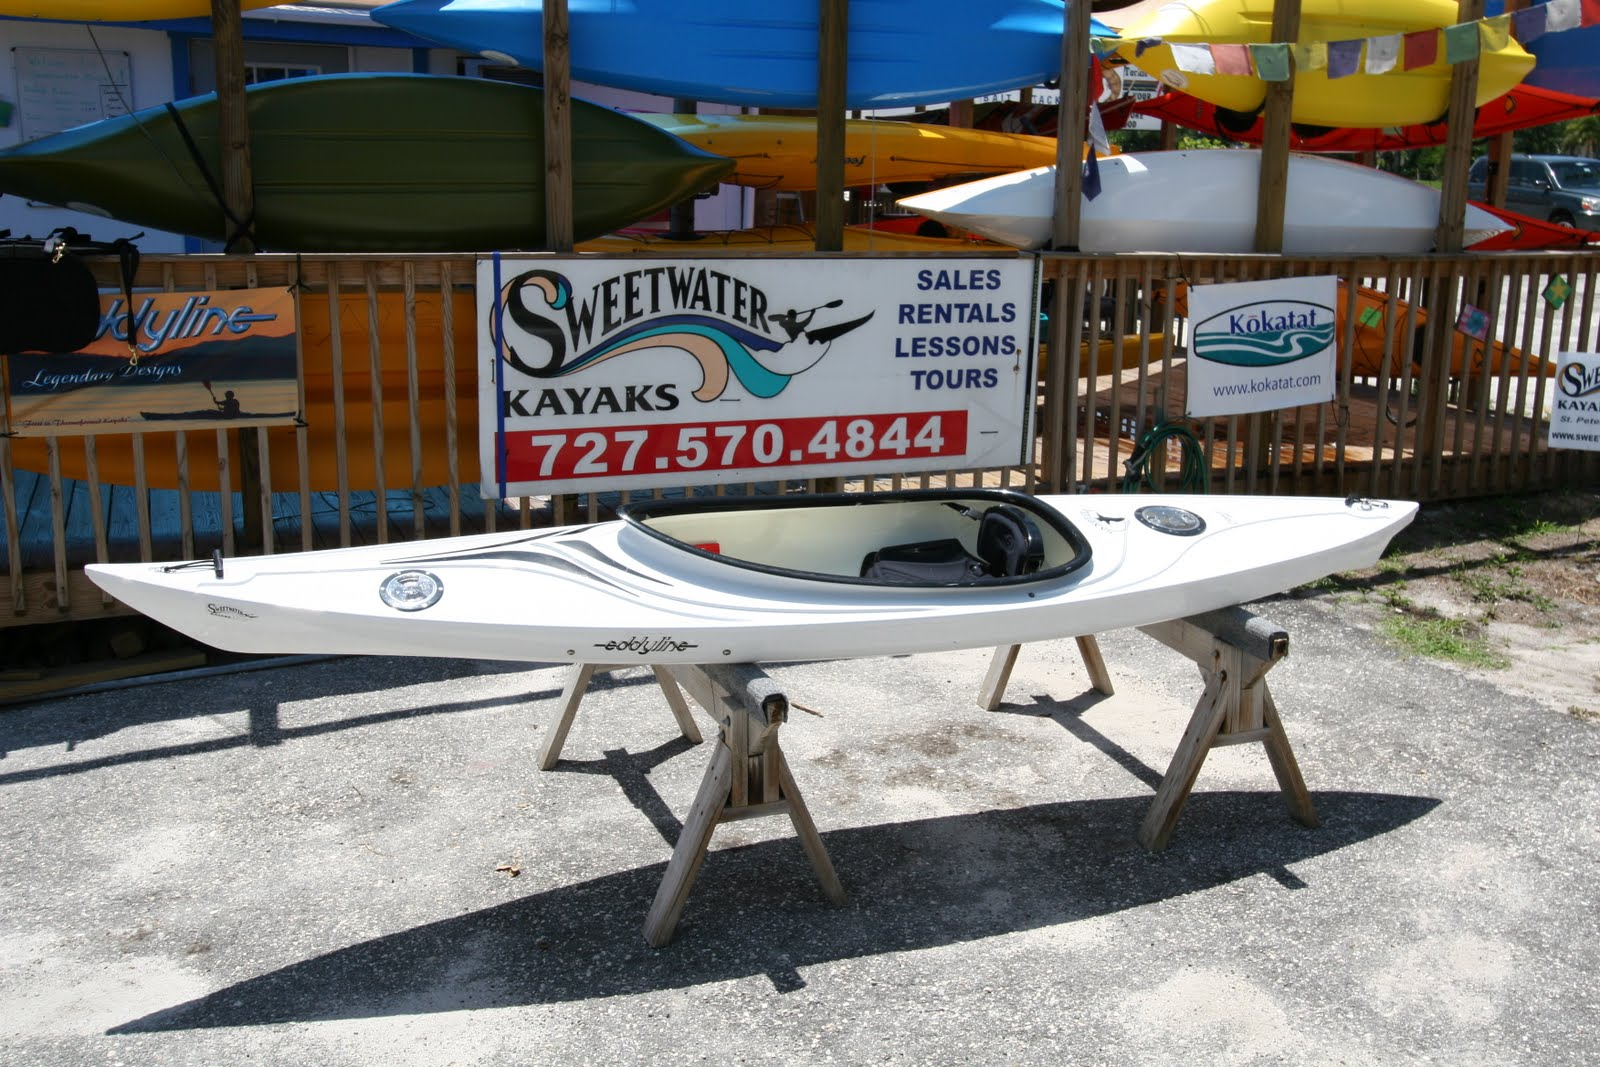 Sweetwater's Boats In Stock: January 2011